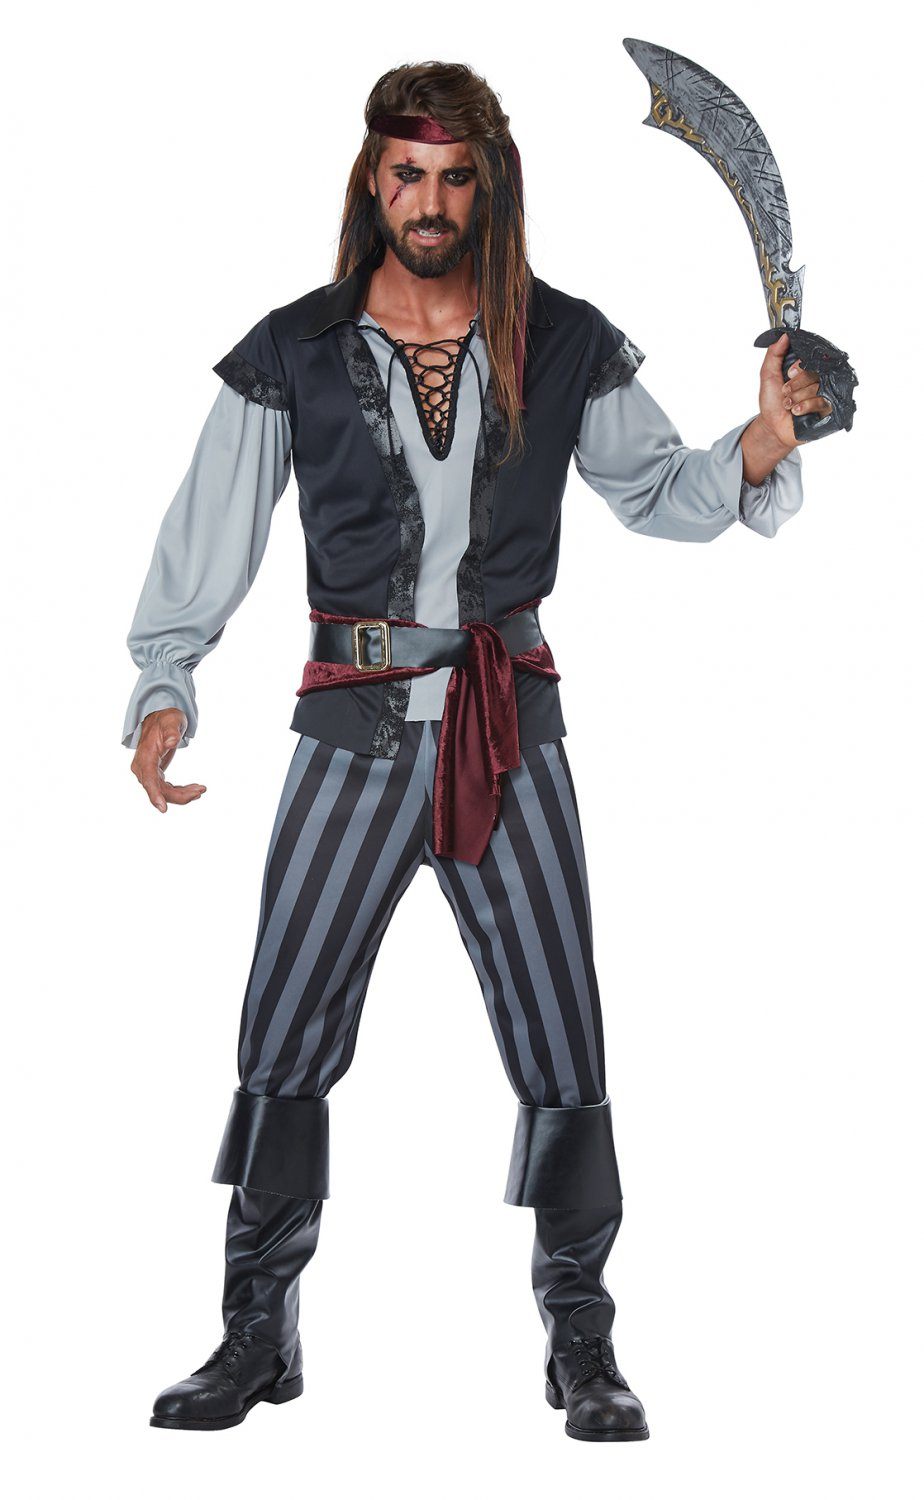 Size: Medium # 01443 Raider Buccaneers Renaissance Scallywag Pirate Adult Costume